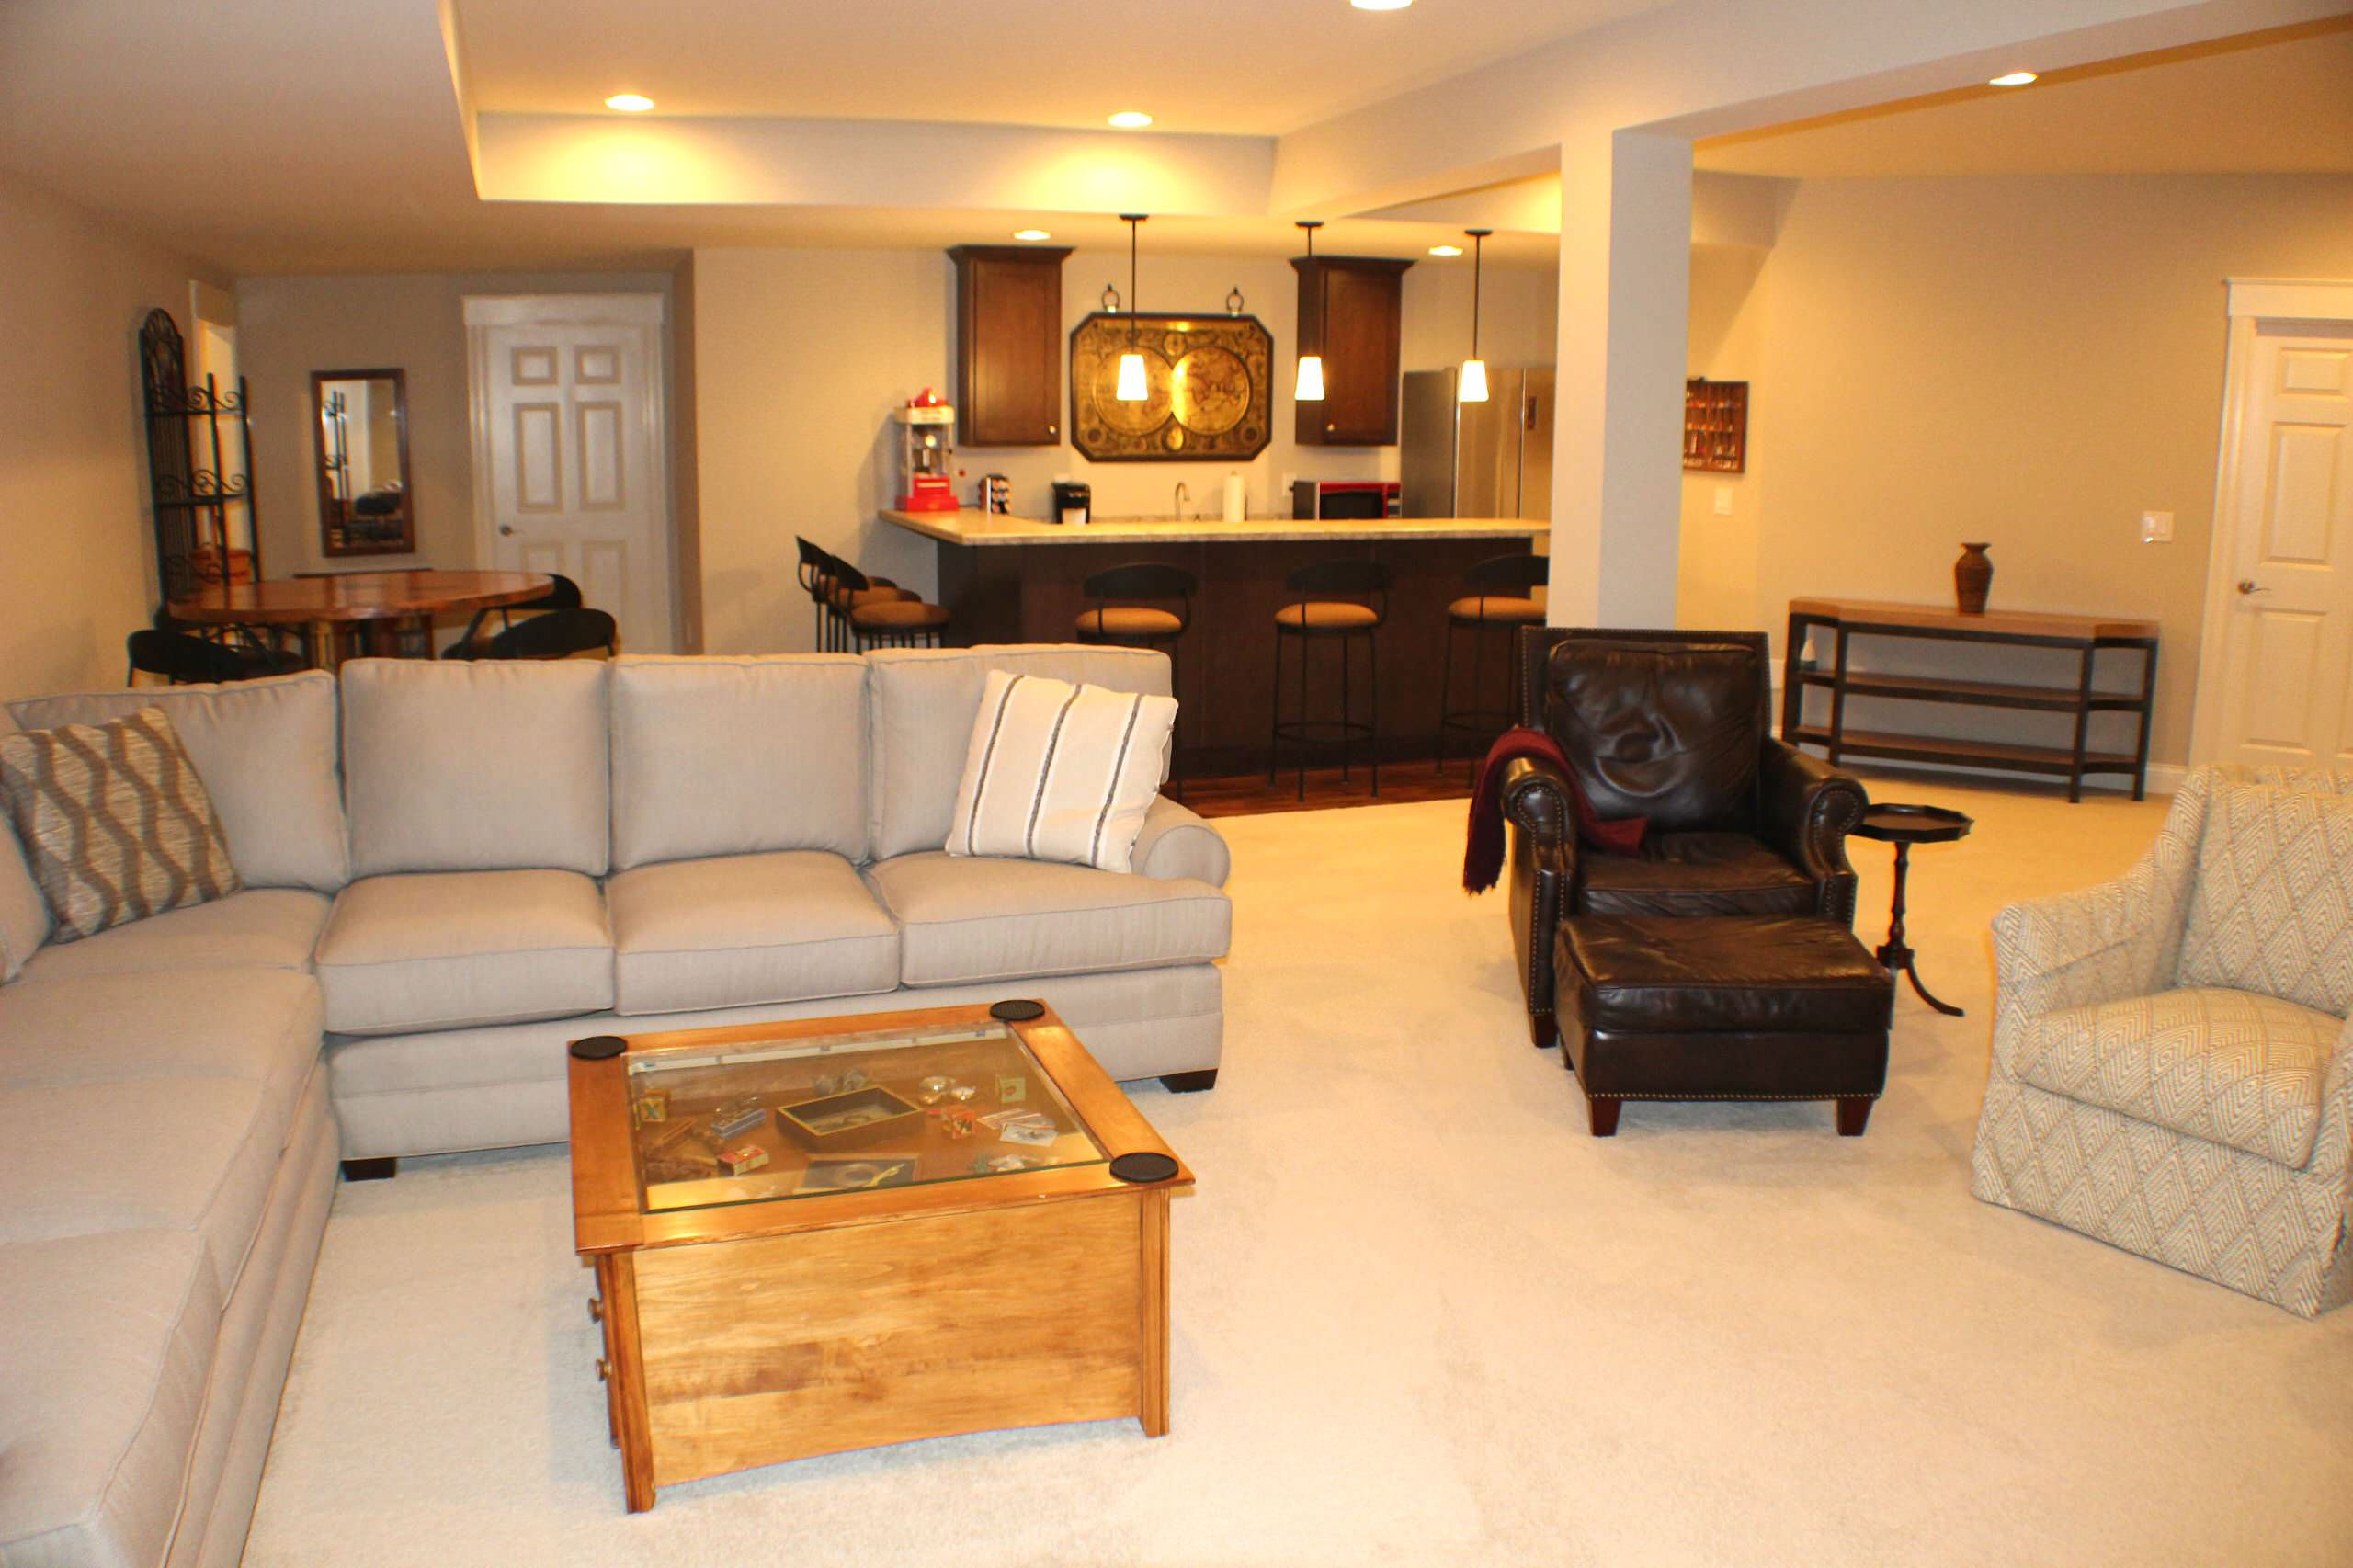 Lower Level Guest Kitchen and Lounge Area